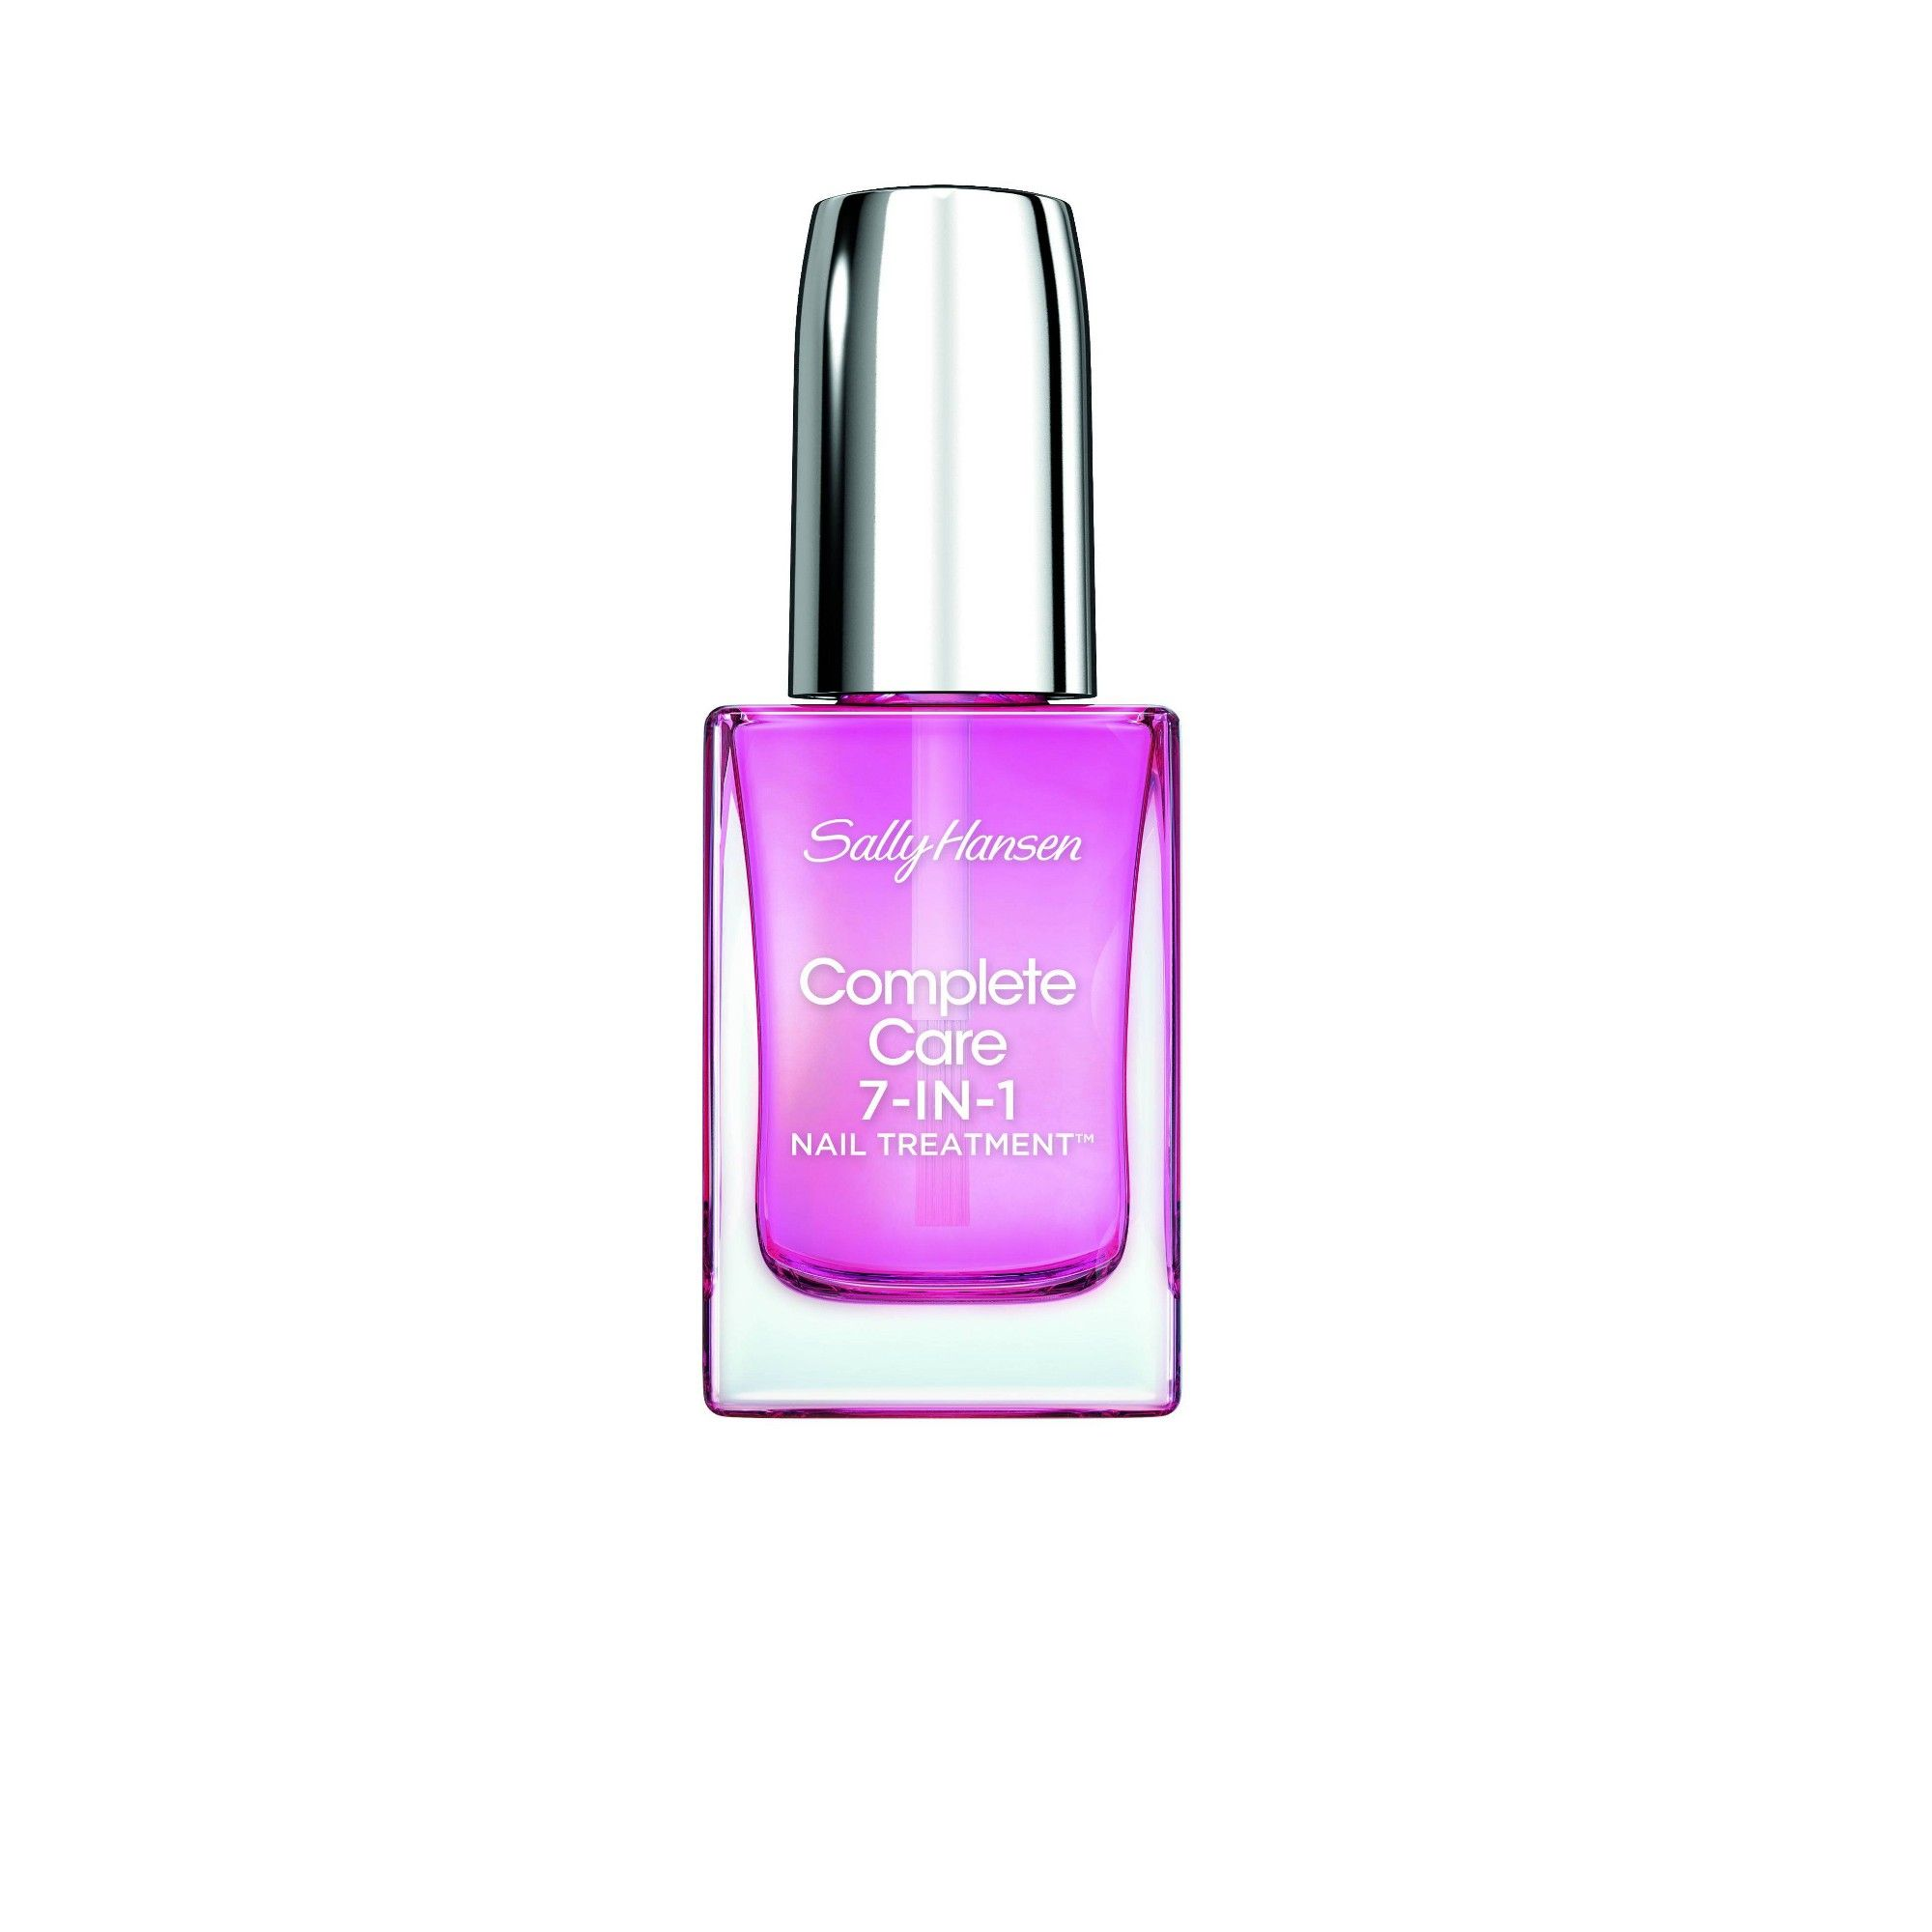 Sally Hansen Nail Treatment 45099 Complete Care 7 In 1 0 45 Fl Oz In 2021 Sally Hansen Nails Nail Treatment Sally Hansen